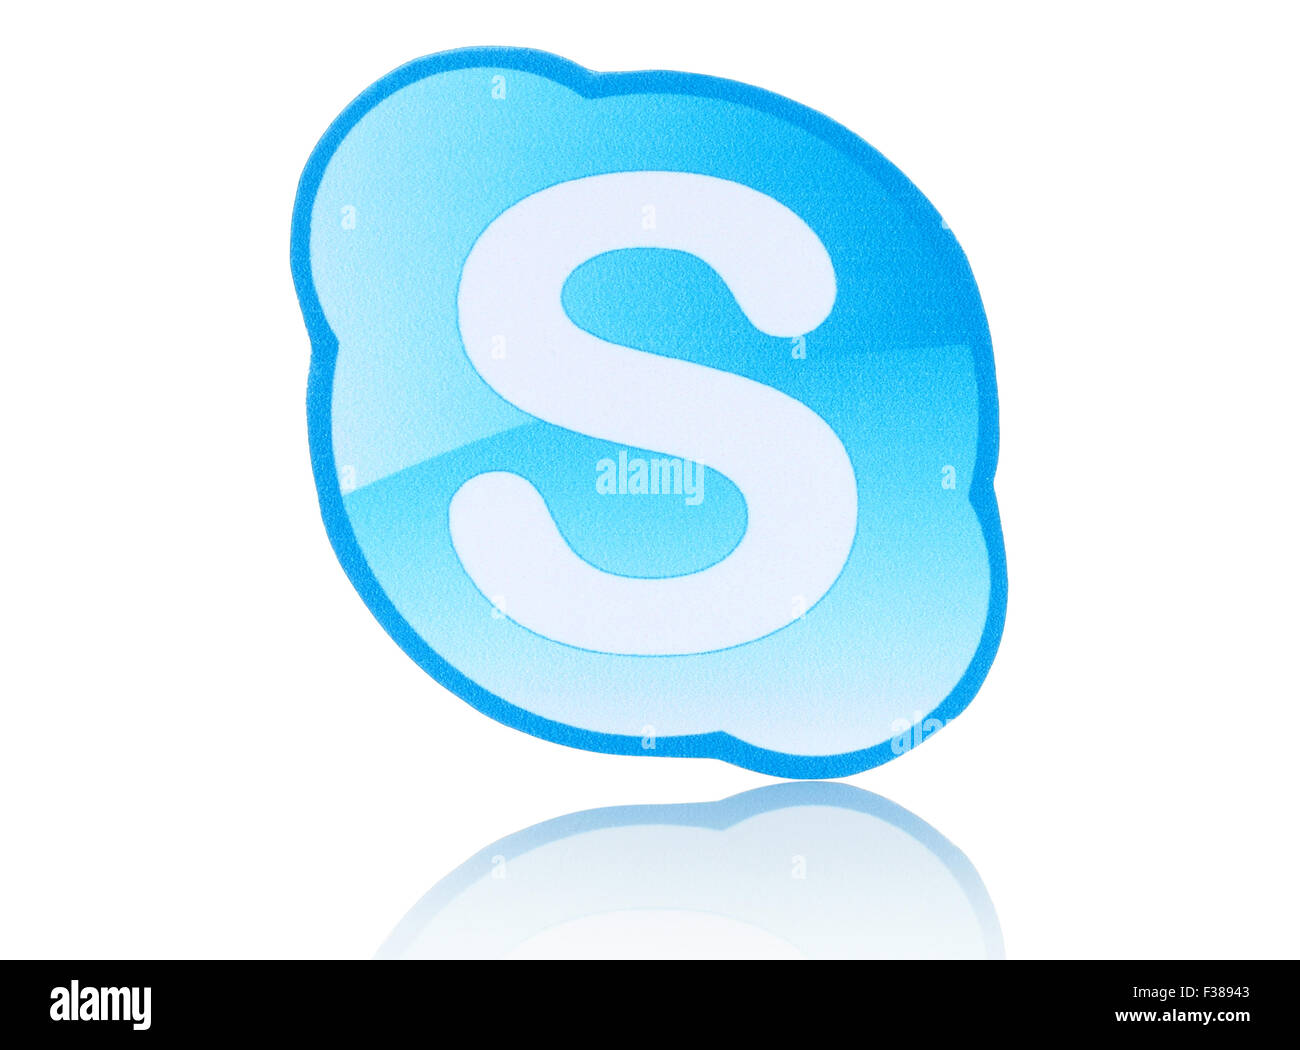 KIEV, UKRAINE - FEBRUARY 19, 2015: Skype logotype printed on paper and placed on white background. - Stock Image